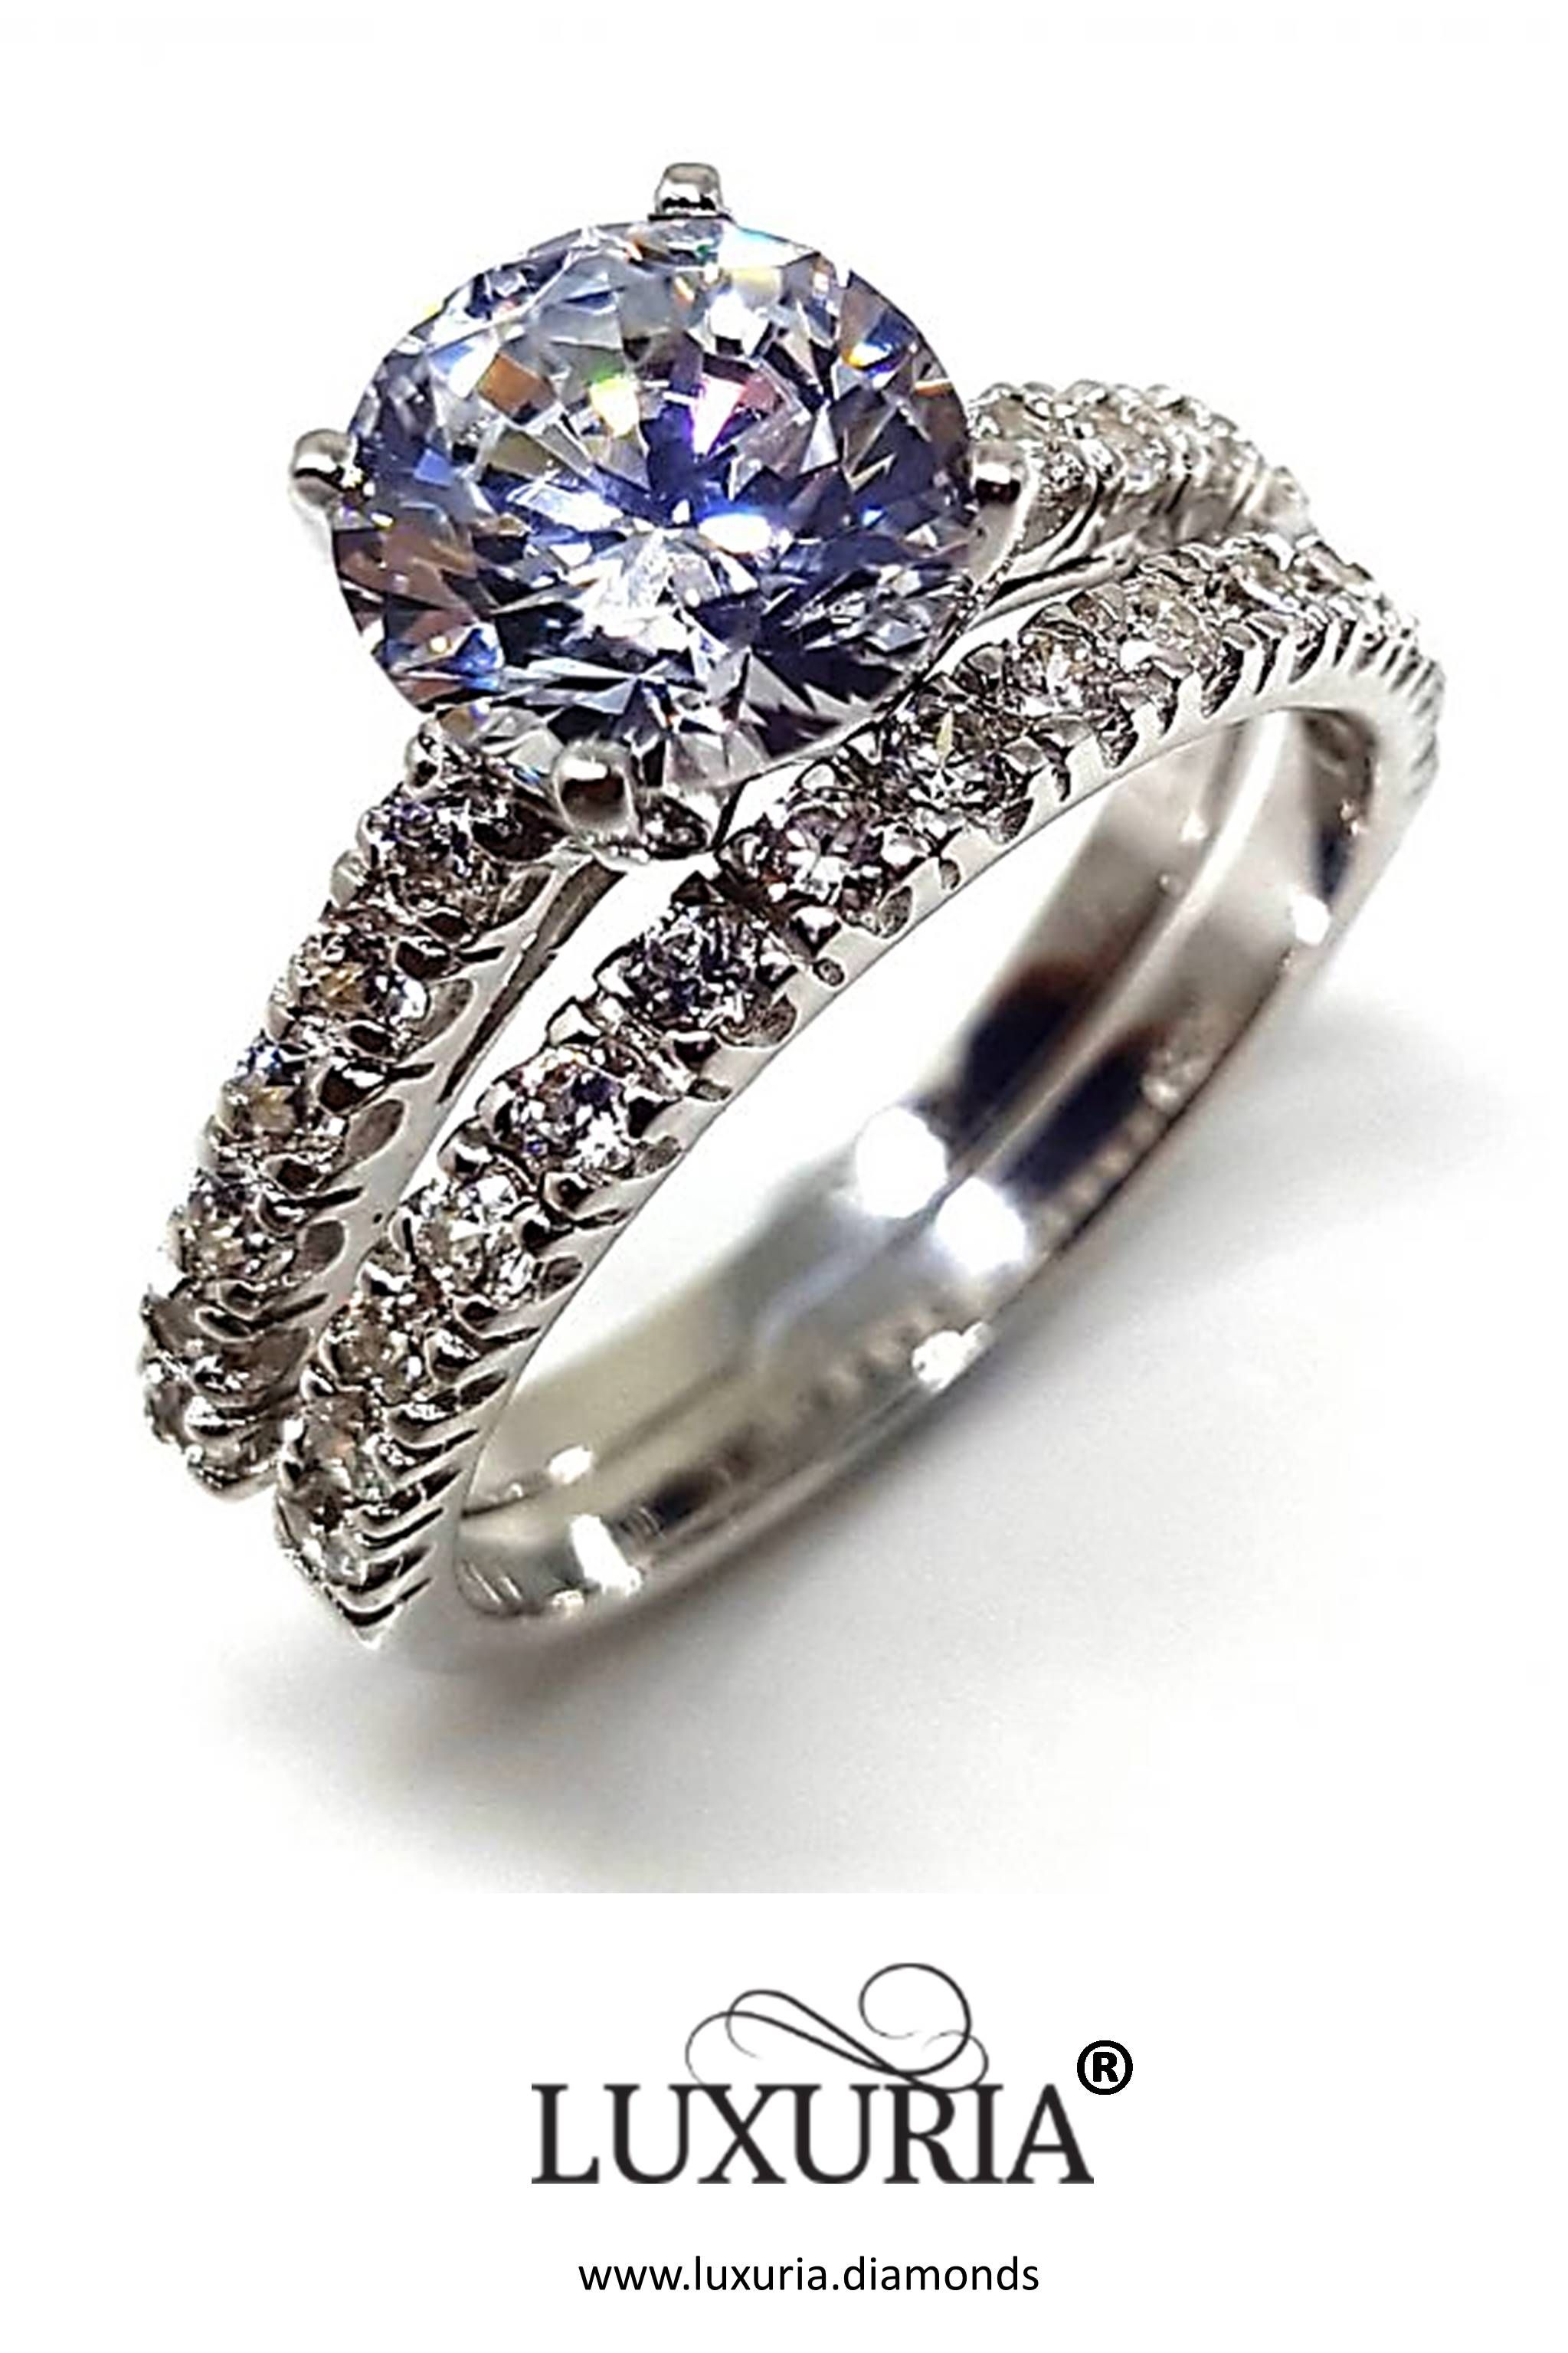 Pin On Luxuria Cubic Zirconia Engagement Rings